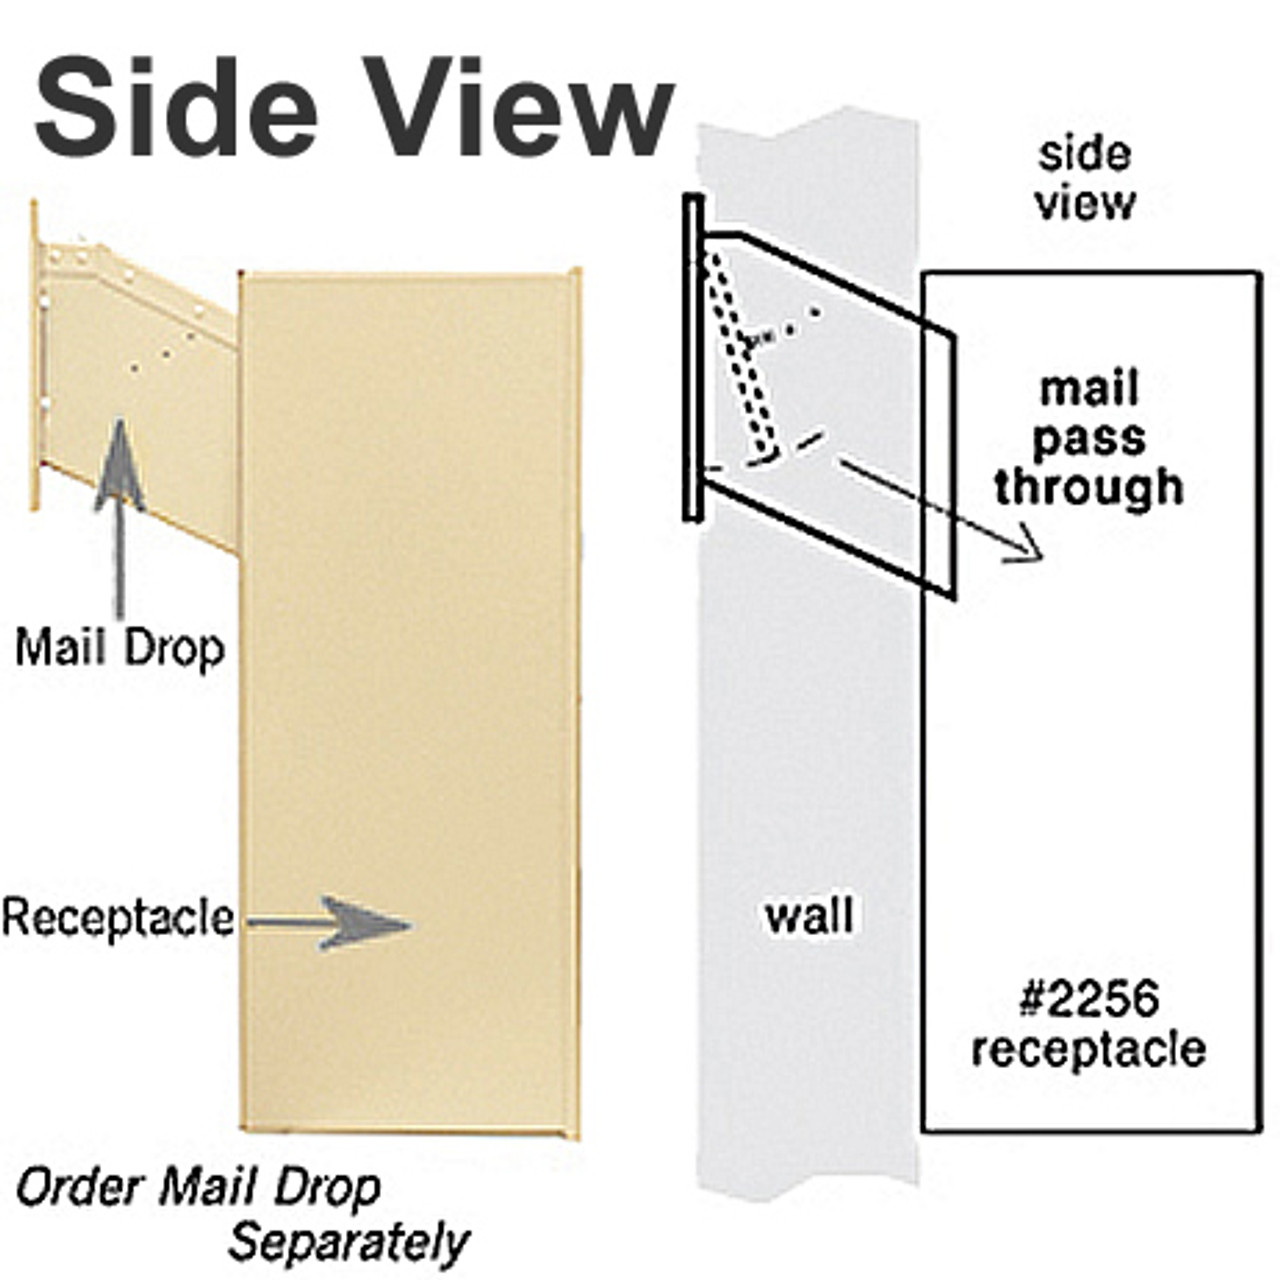 Wall Mail Drop Slot S2255 receptacle side view